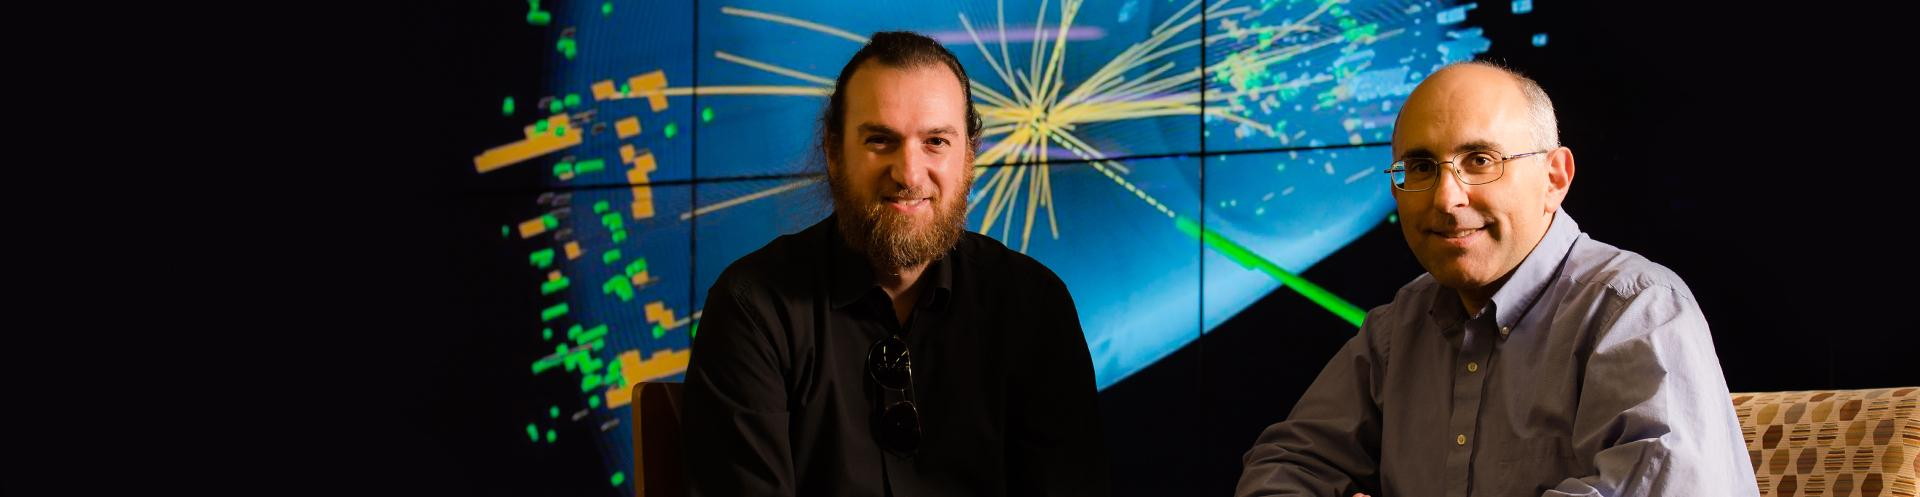 Kennesaw State physicists awarded NSF grants